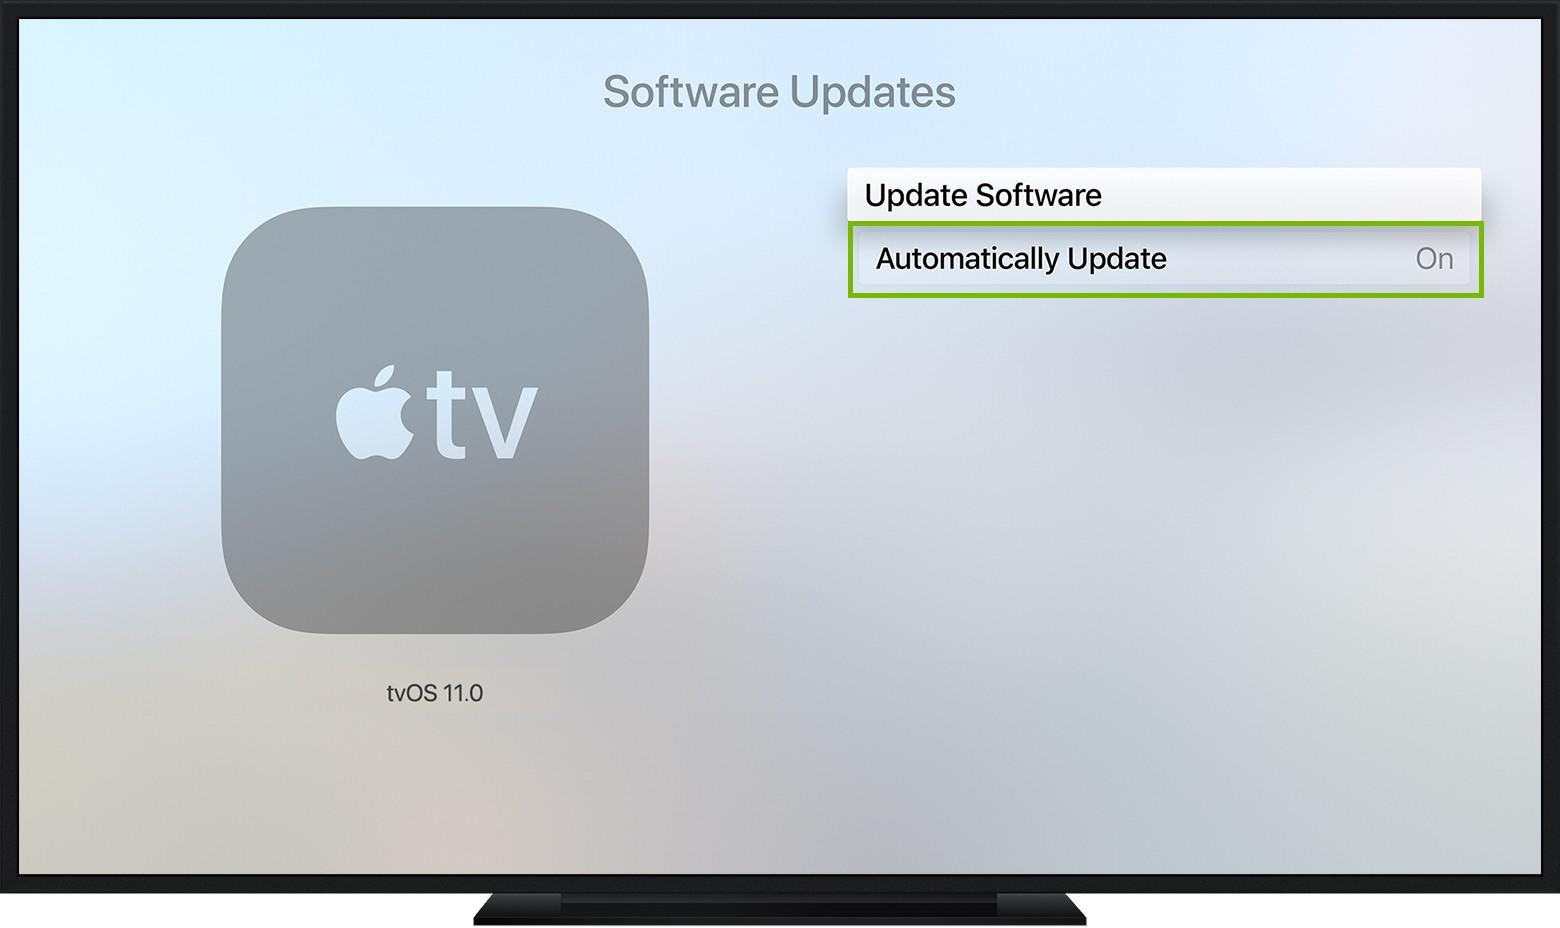 Apple TV Software Updates screen highlighting the Automatically Update option.